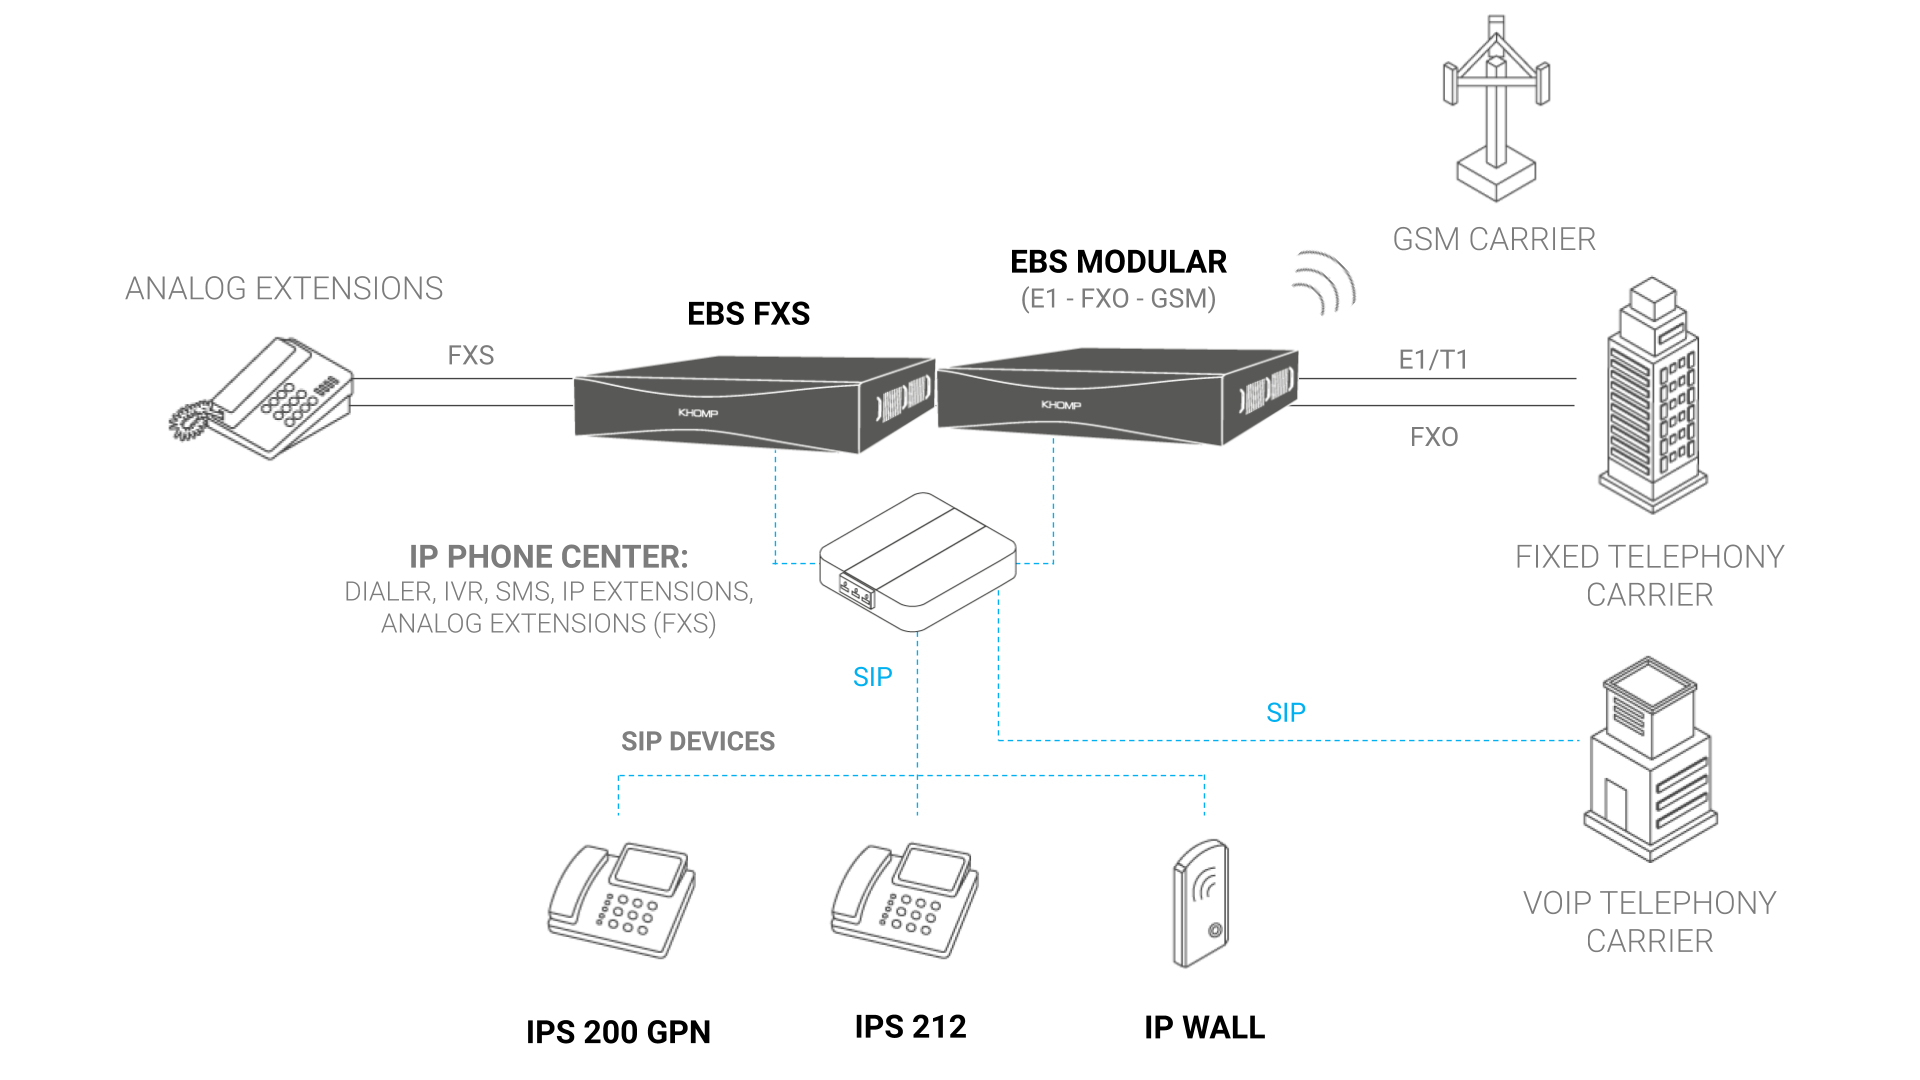 Application Model - EBS Modular